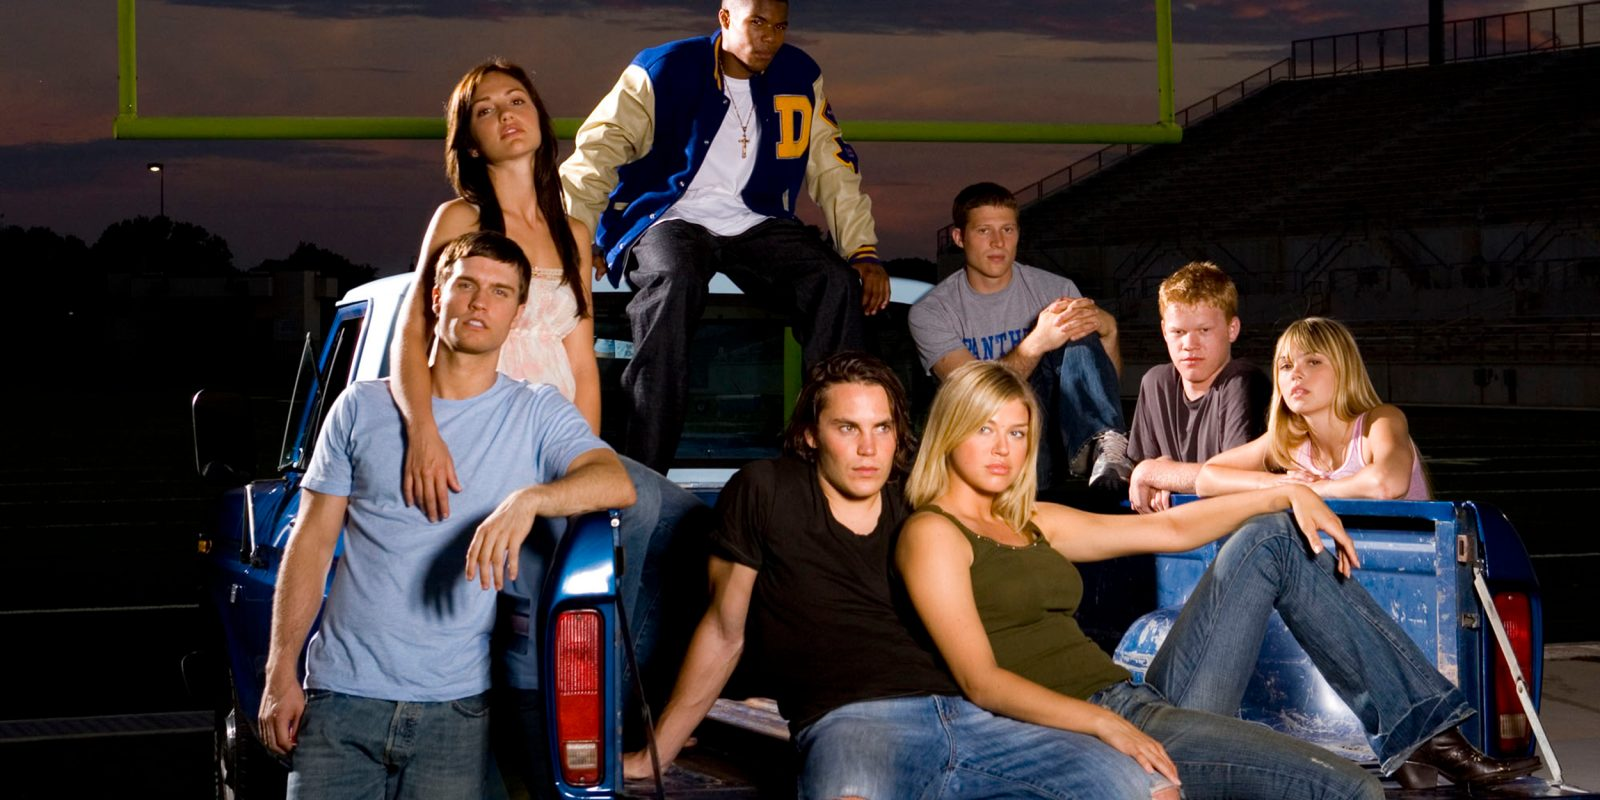 Apple discounts the complete Friday Night Lights series to $20, movies from $5